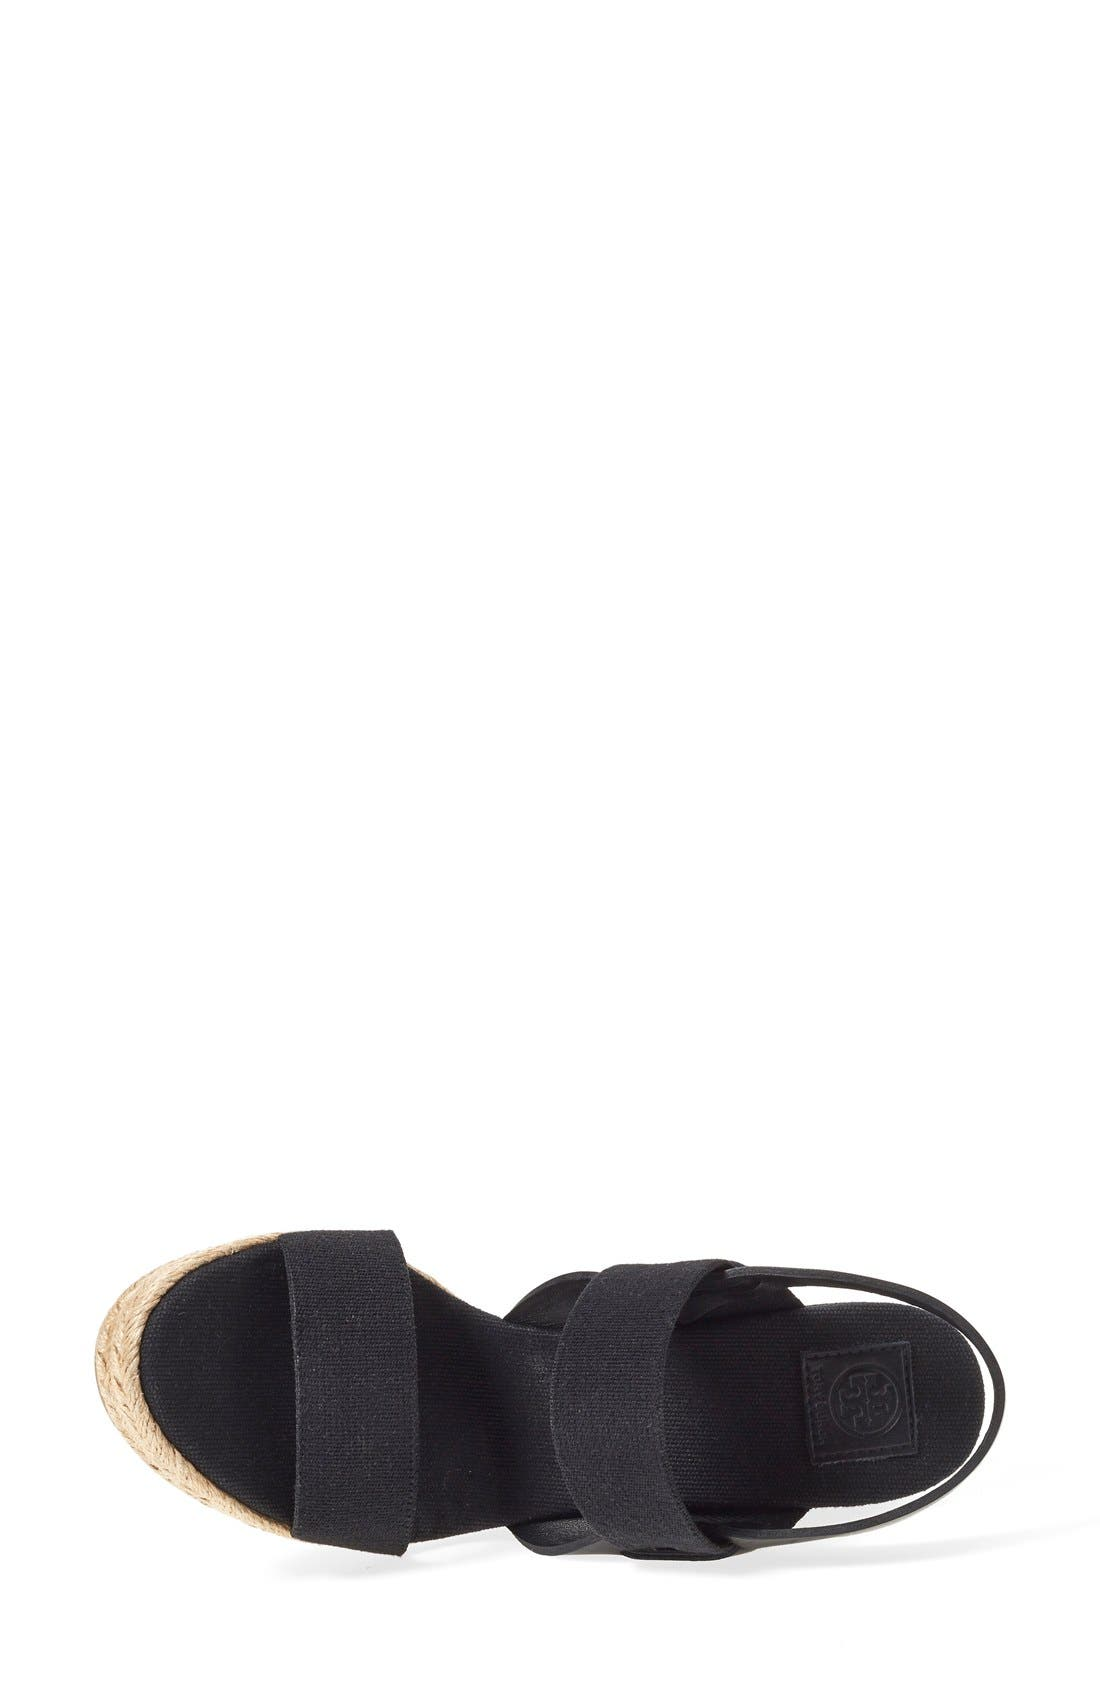 TORY BURCH, Espadrille Wedge Sandal, Alternate thumbnail 4, color, 009